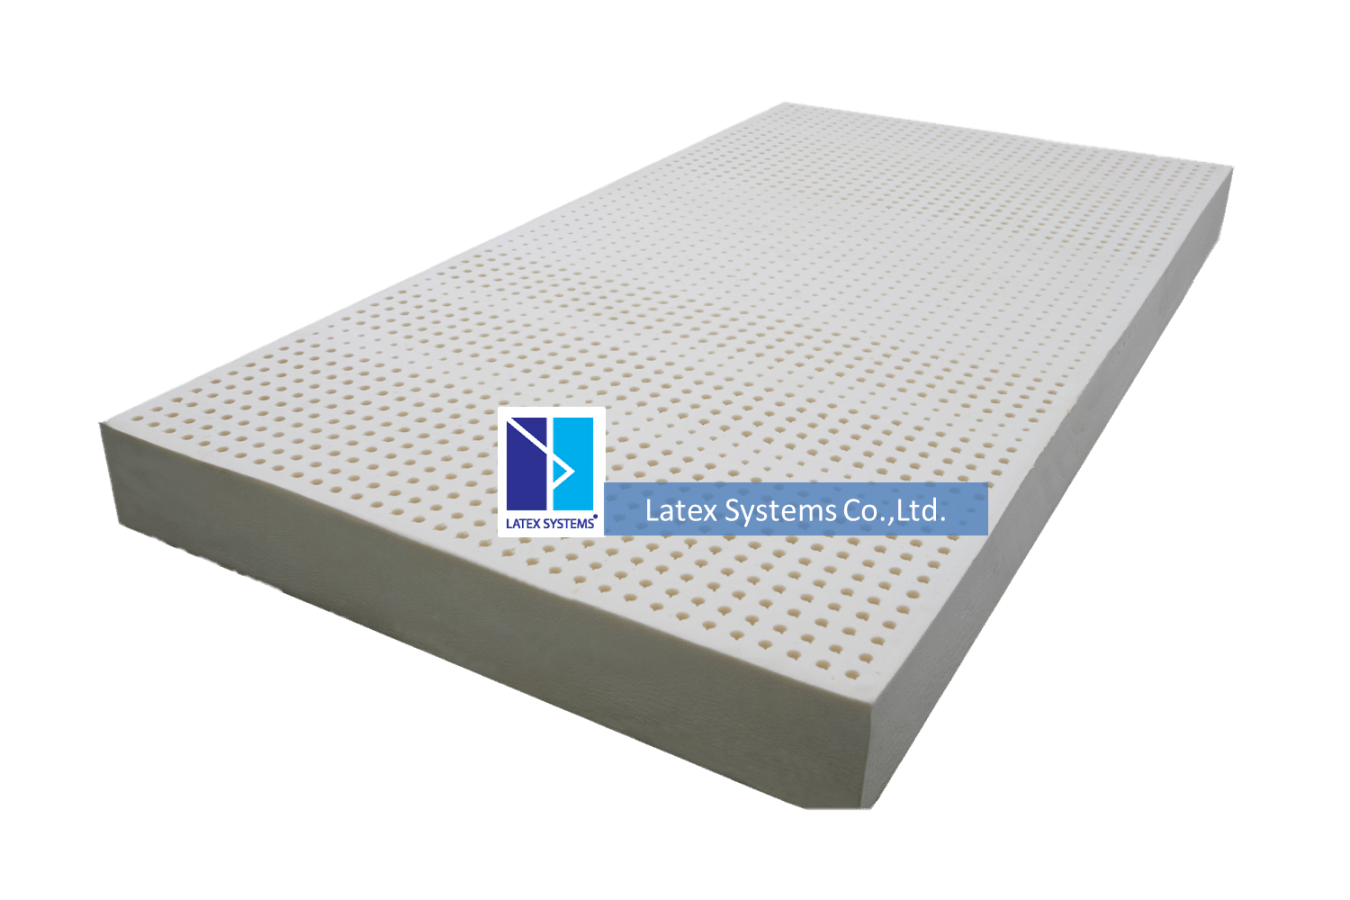 Latex Mattress Companies Latex Systems Public Company Limited Thailand Trust Mark